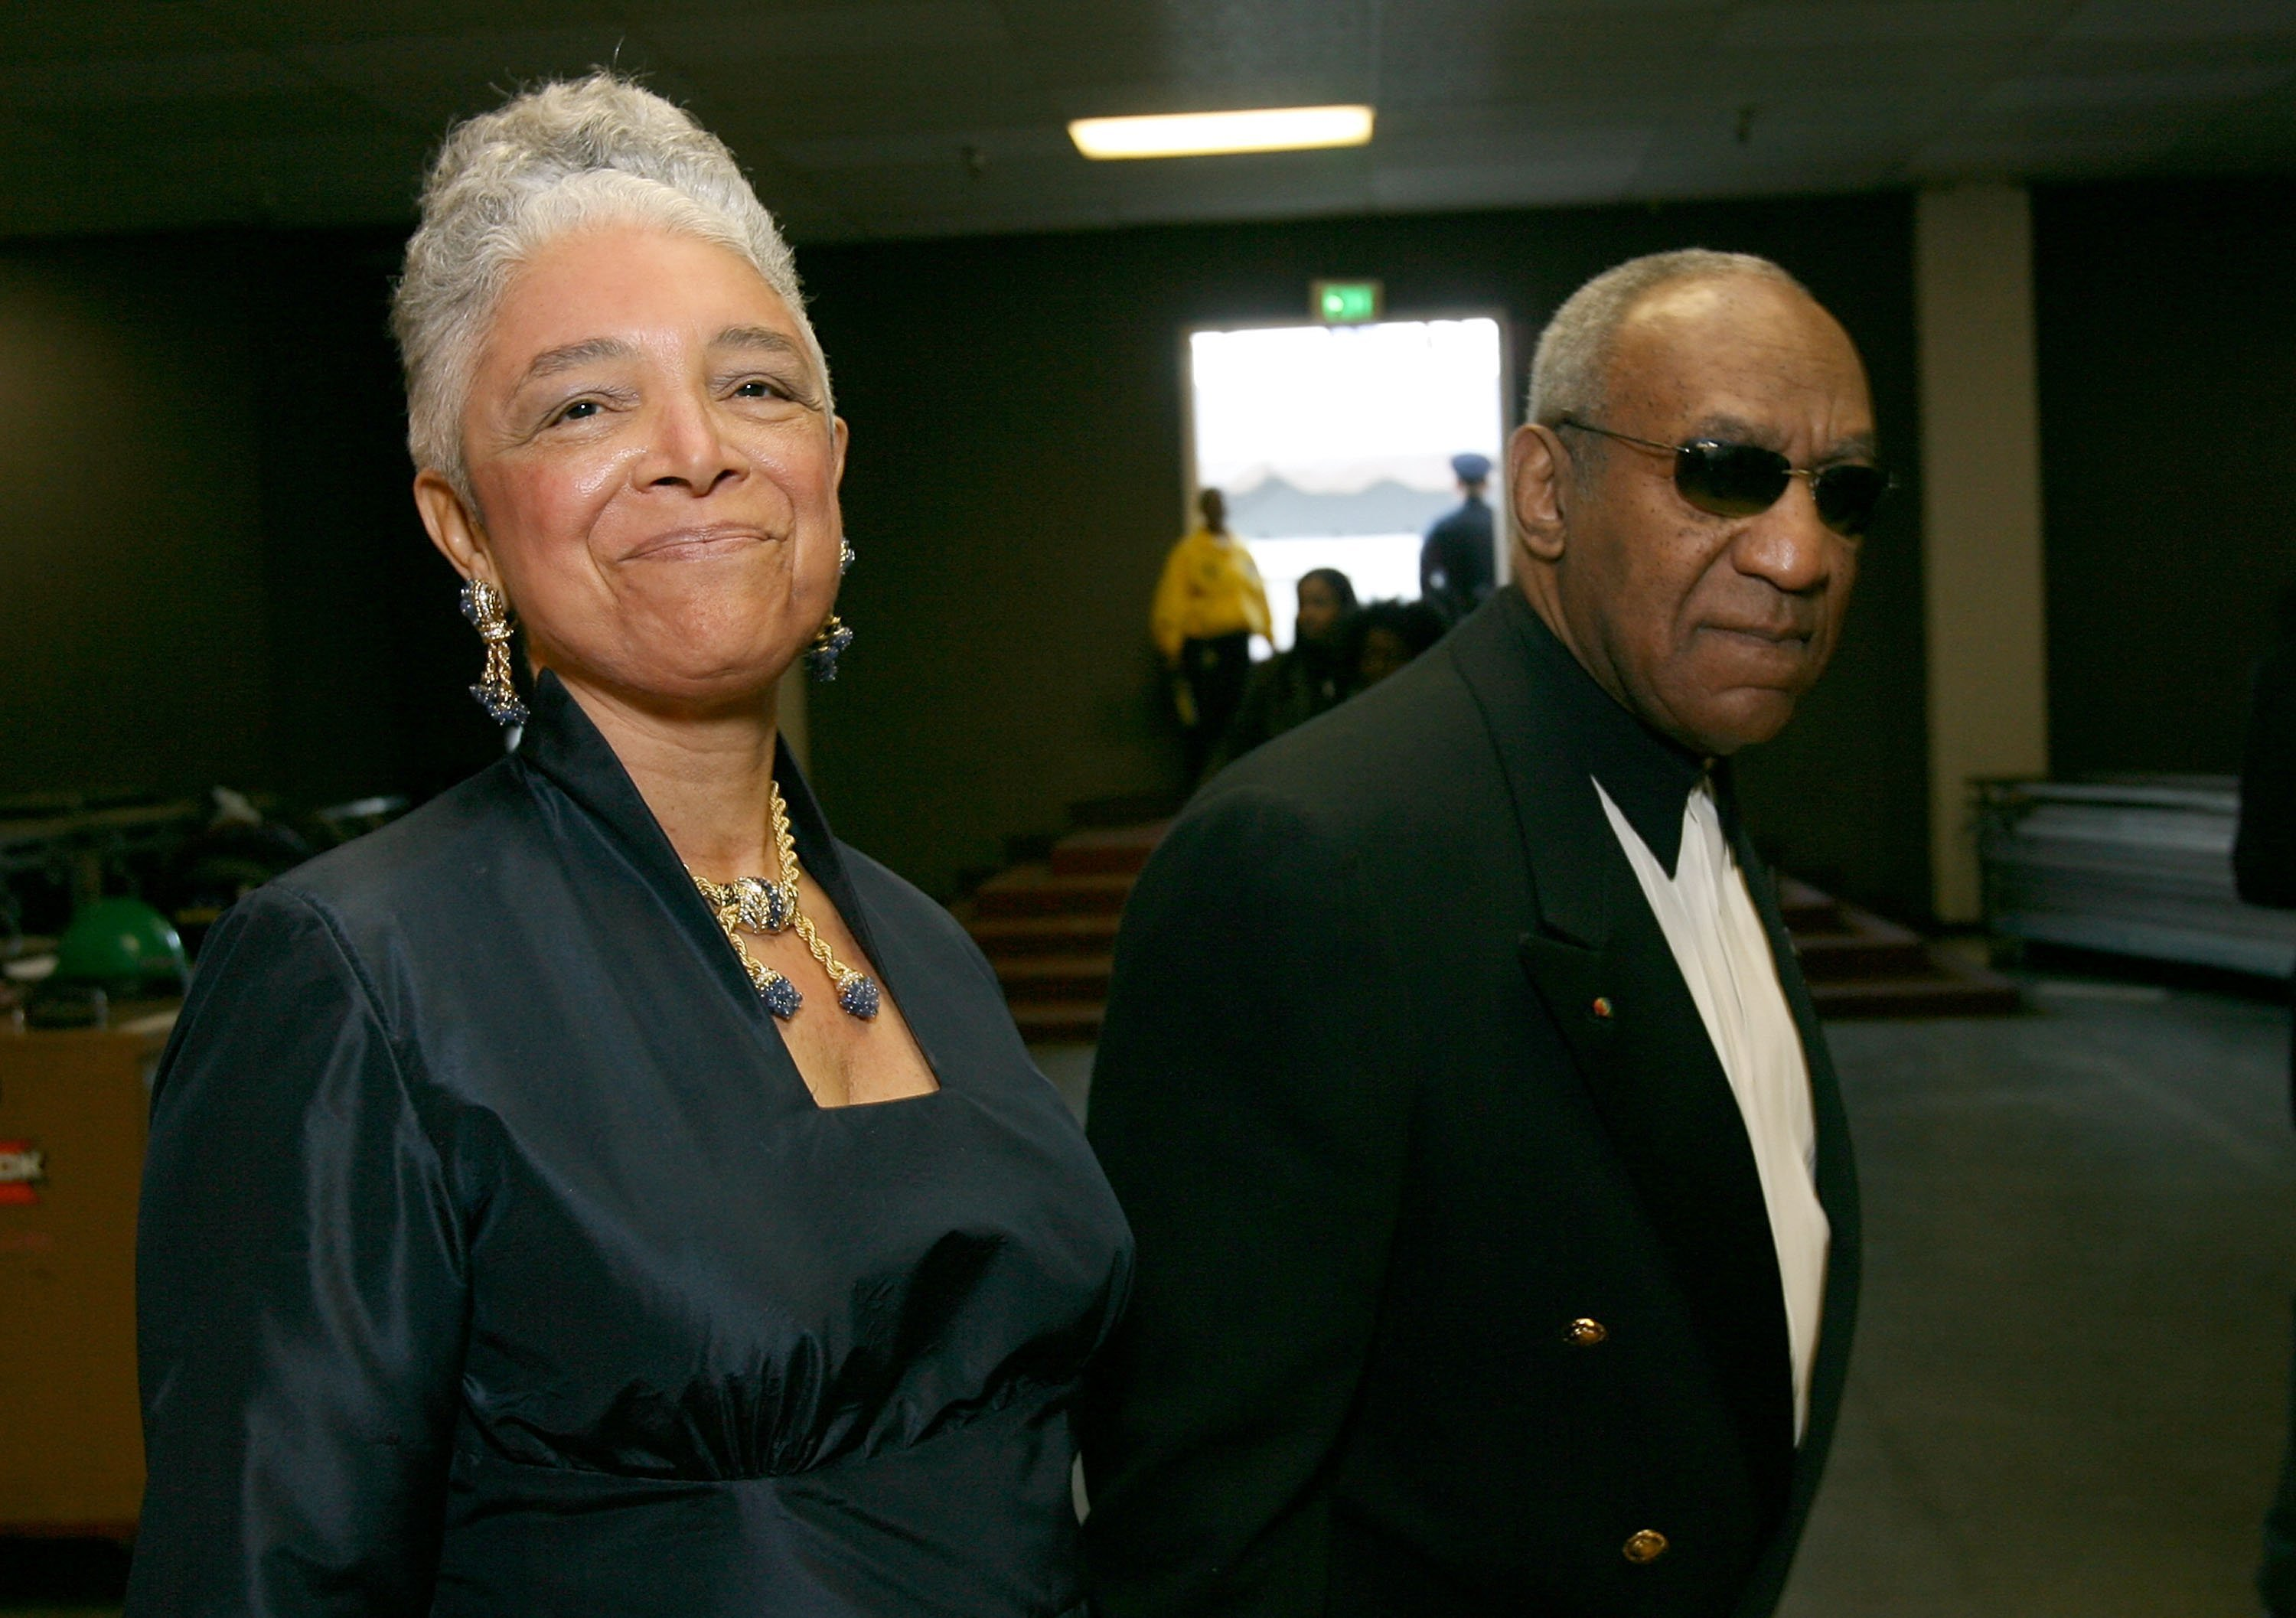 Bill Cosby and wife Camille Cosby during the annual NAACP Image Awards on March 2, 2007 in California | Photo: Getty Images